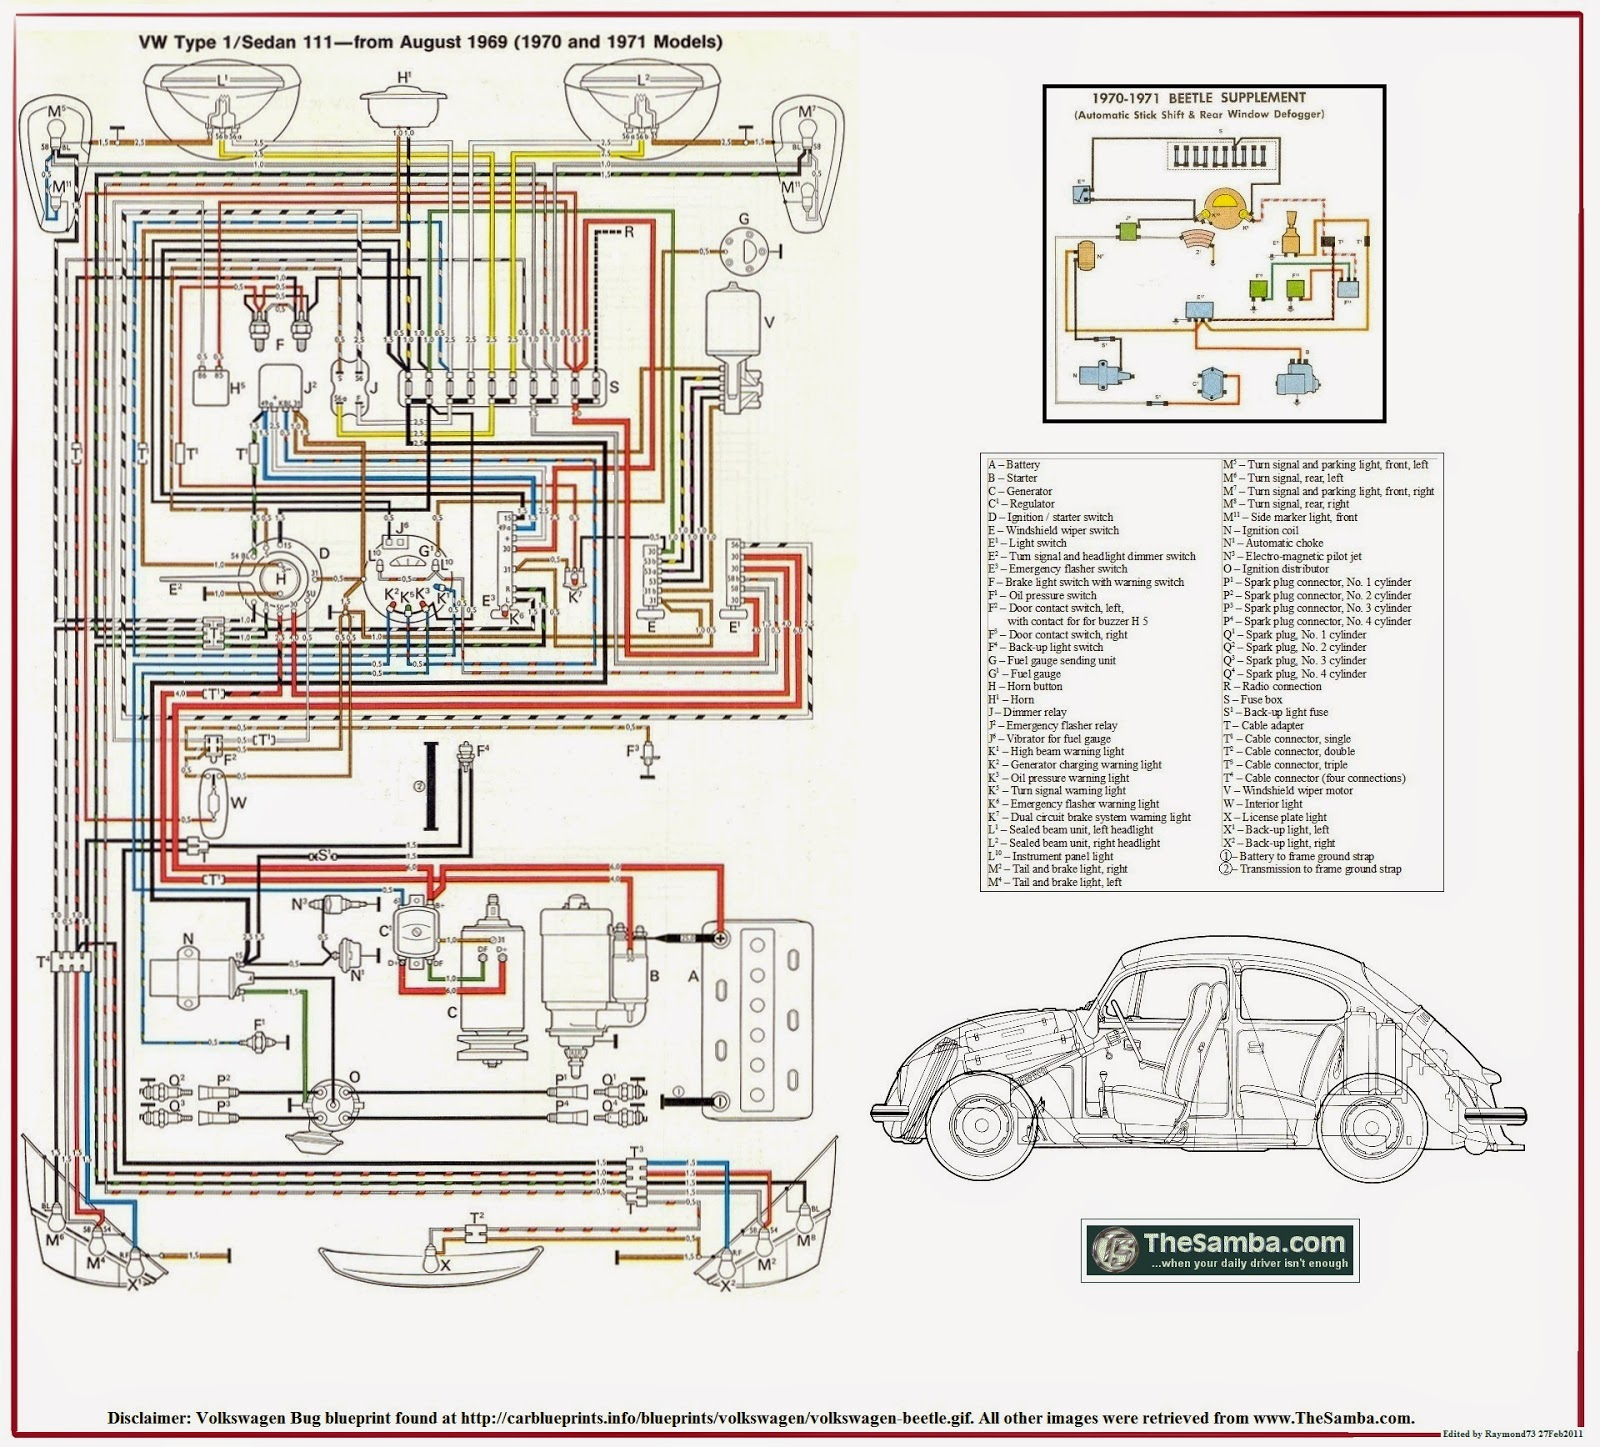 1973 Vw Super Beetle Engine Wiring Diagram - ~ Wiring Diagram Portal ~ •getcircuitdiagram.today